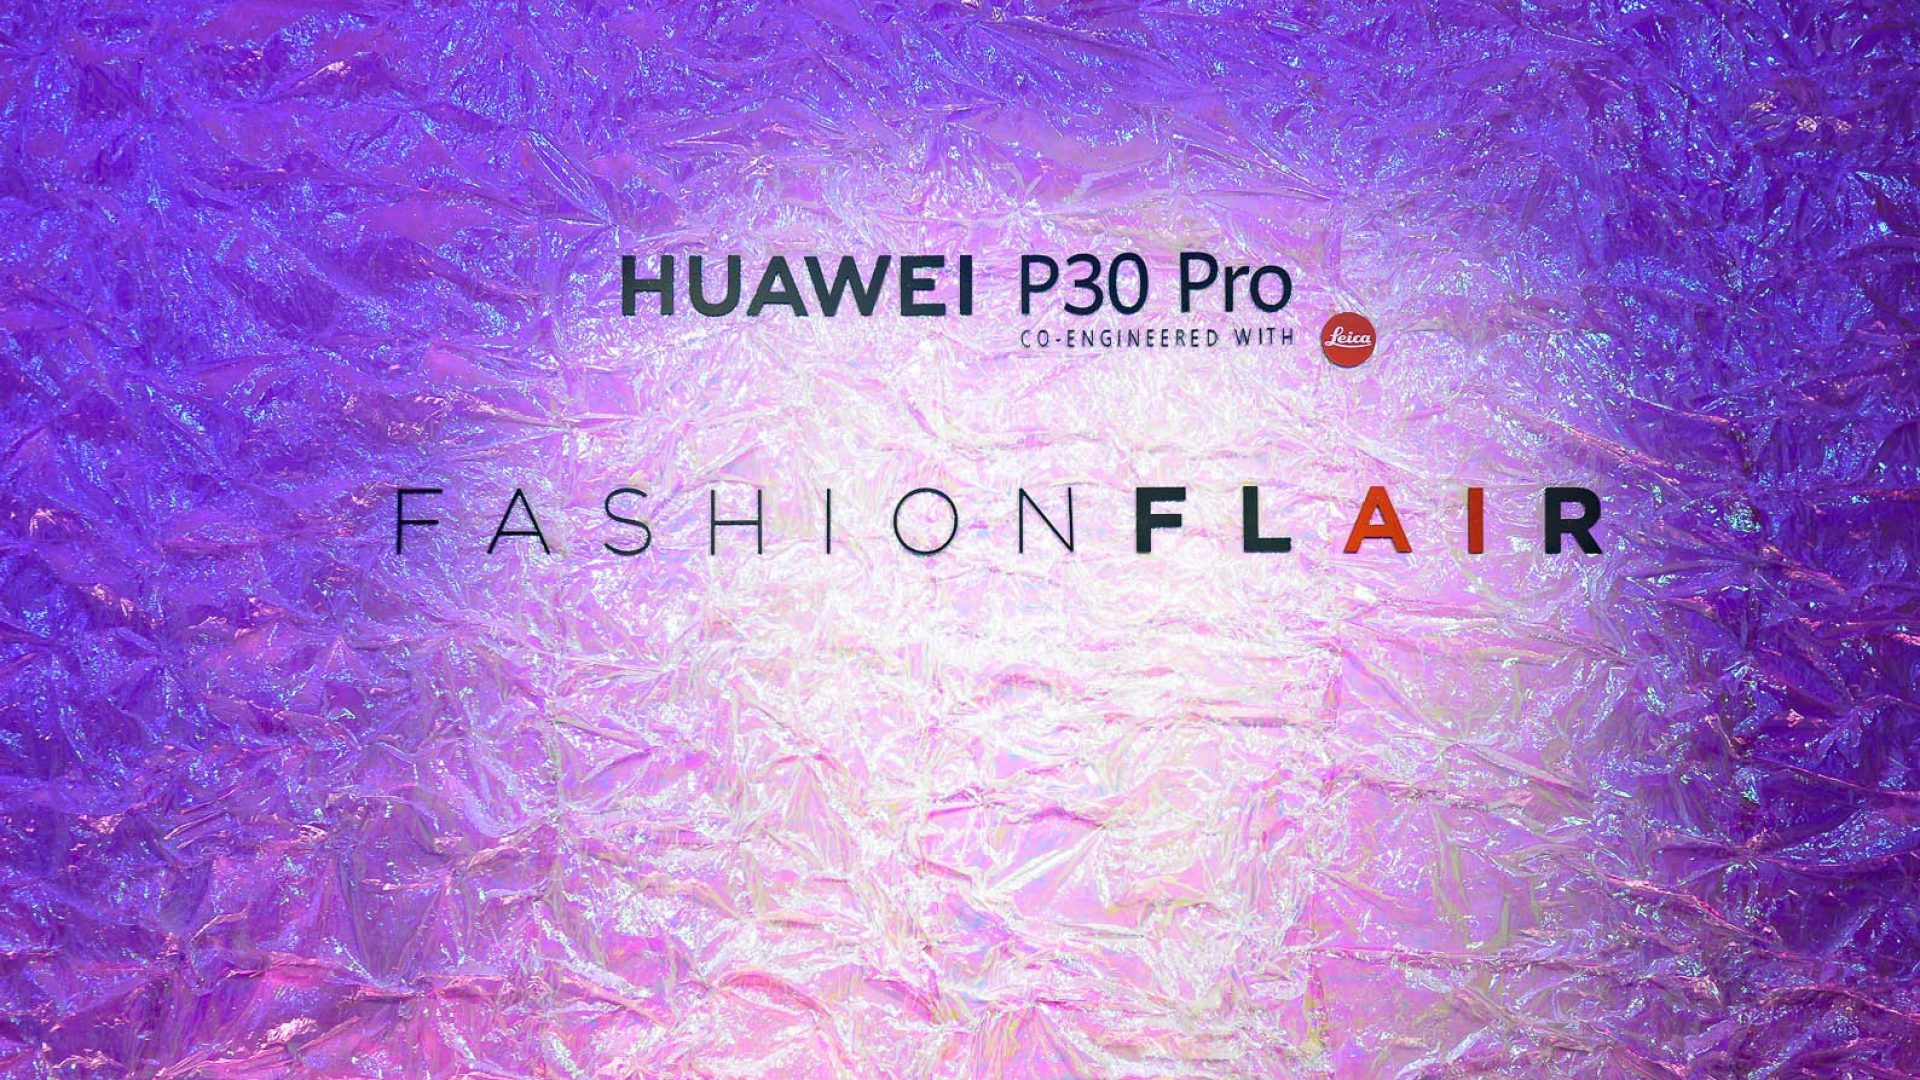 LFM Group per Huawei 2019 - High-tech/Fashion synergy with Annakiki fashion show co-created with the AI of the new HUAWEI P30 PRO   - by Artes Group International